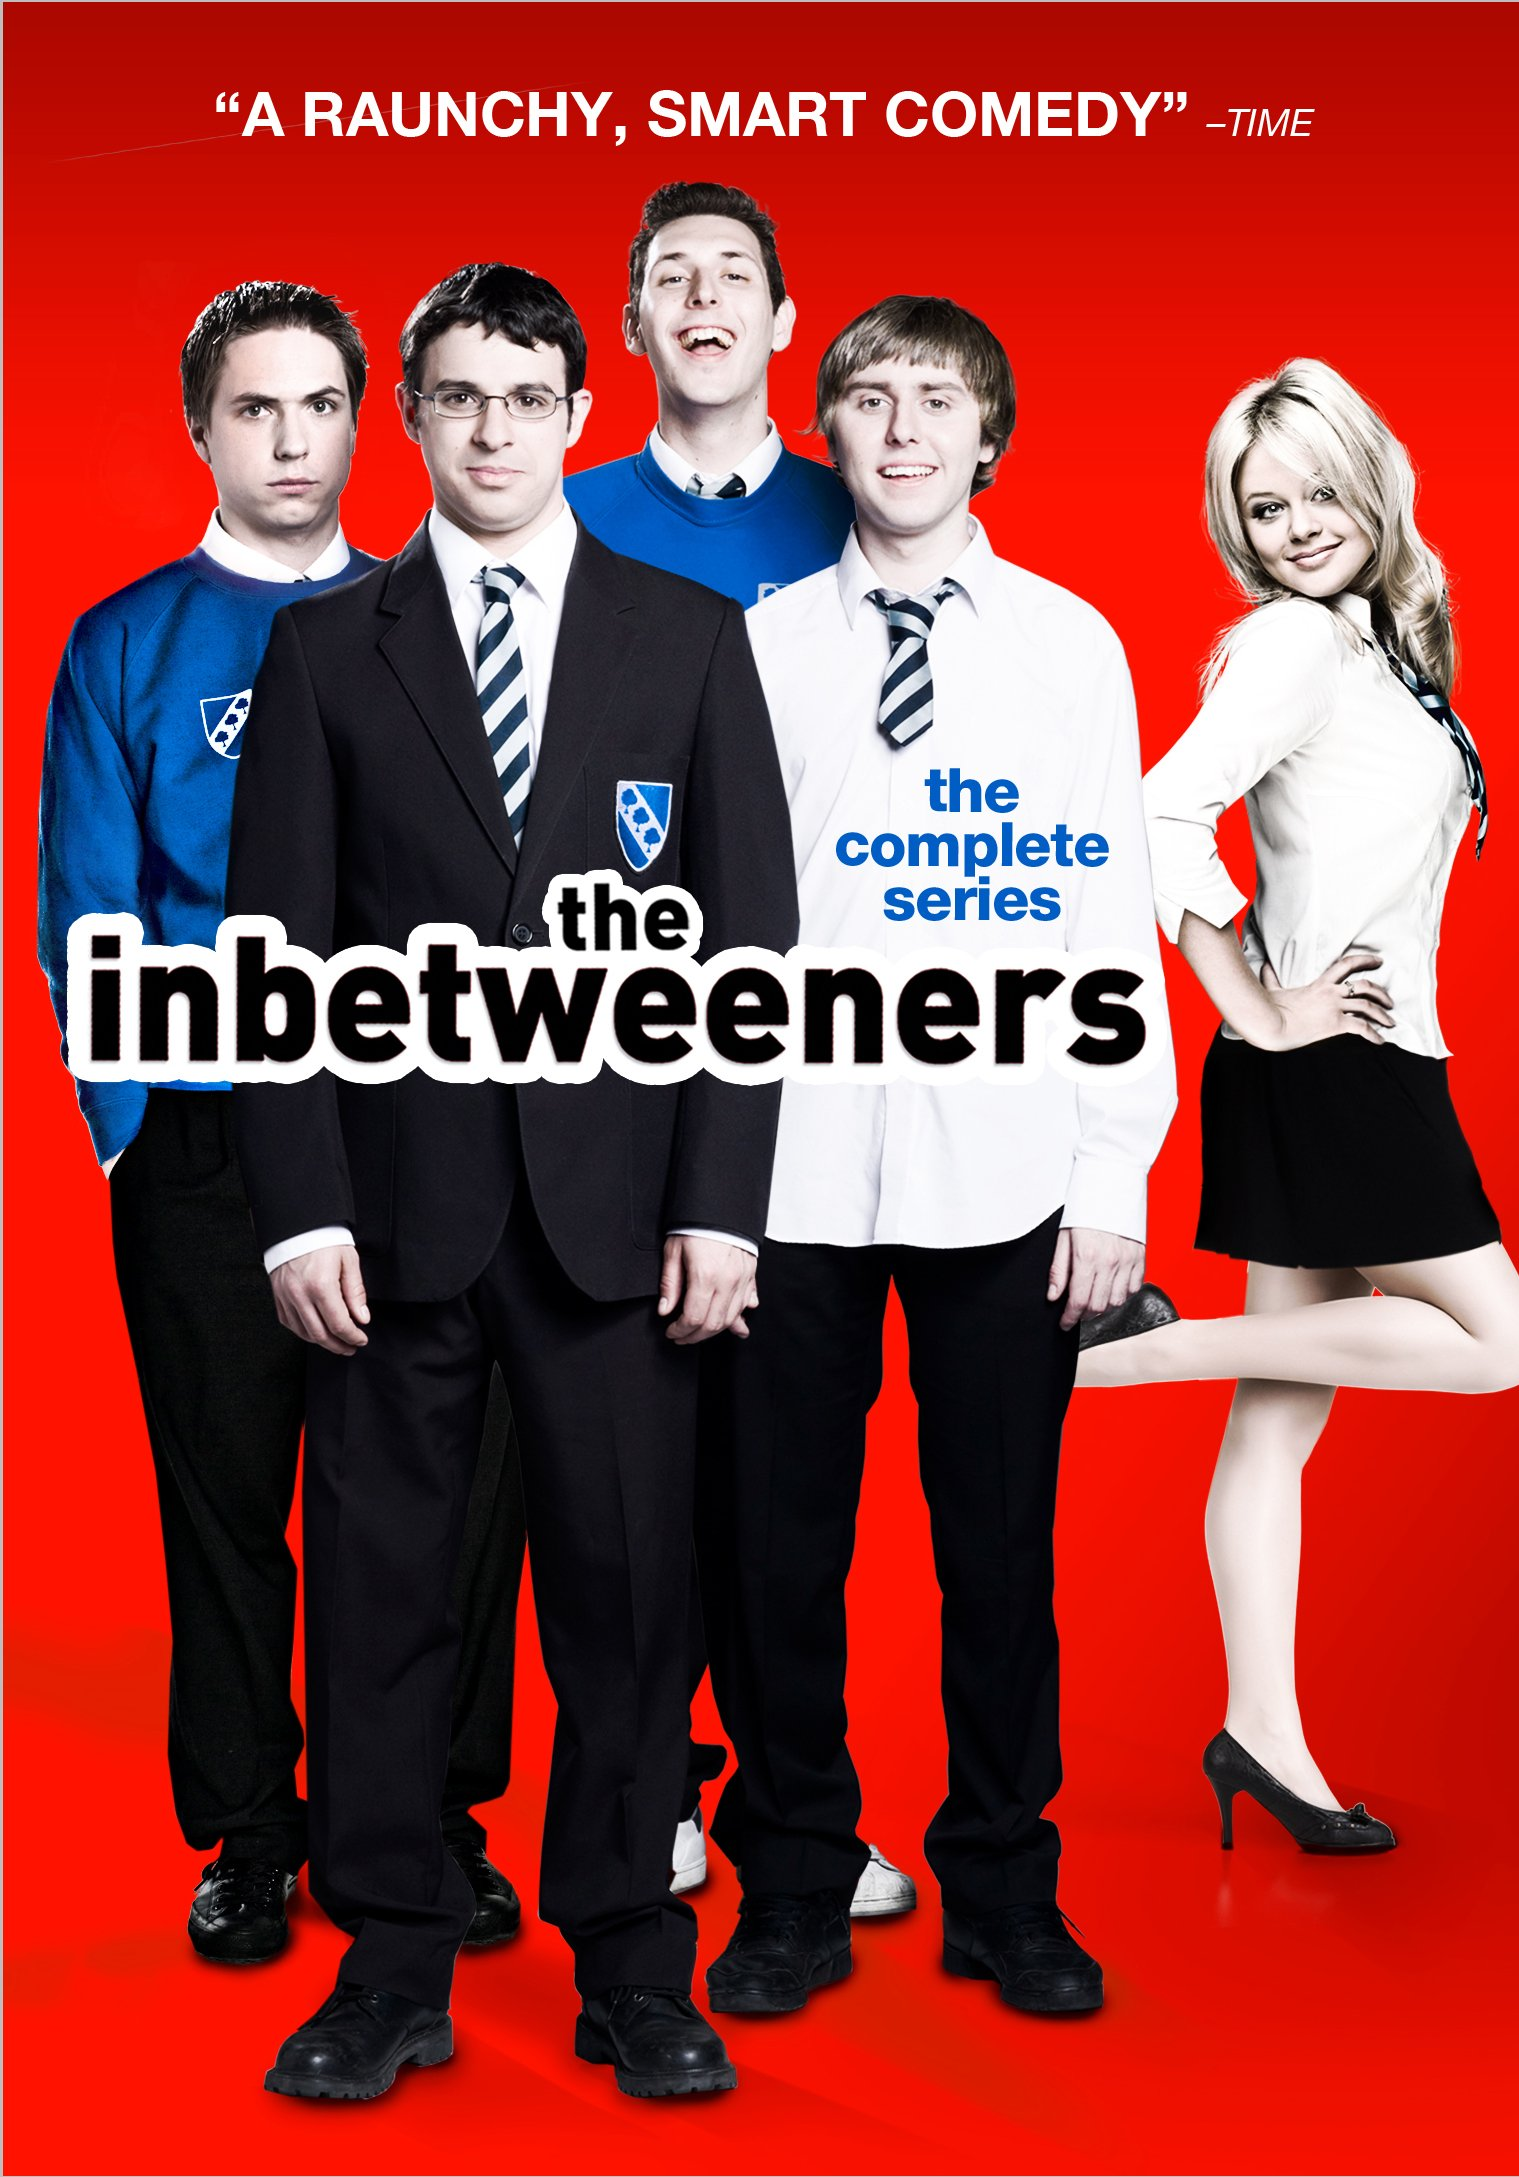 The Inbetweeners (TV Series 2008–2010) - Images - IMDb